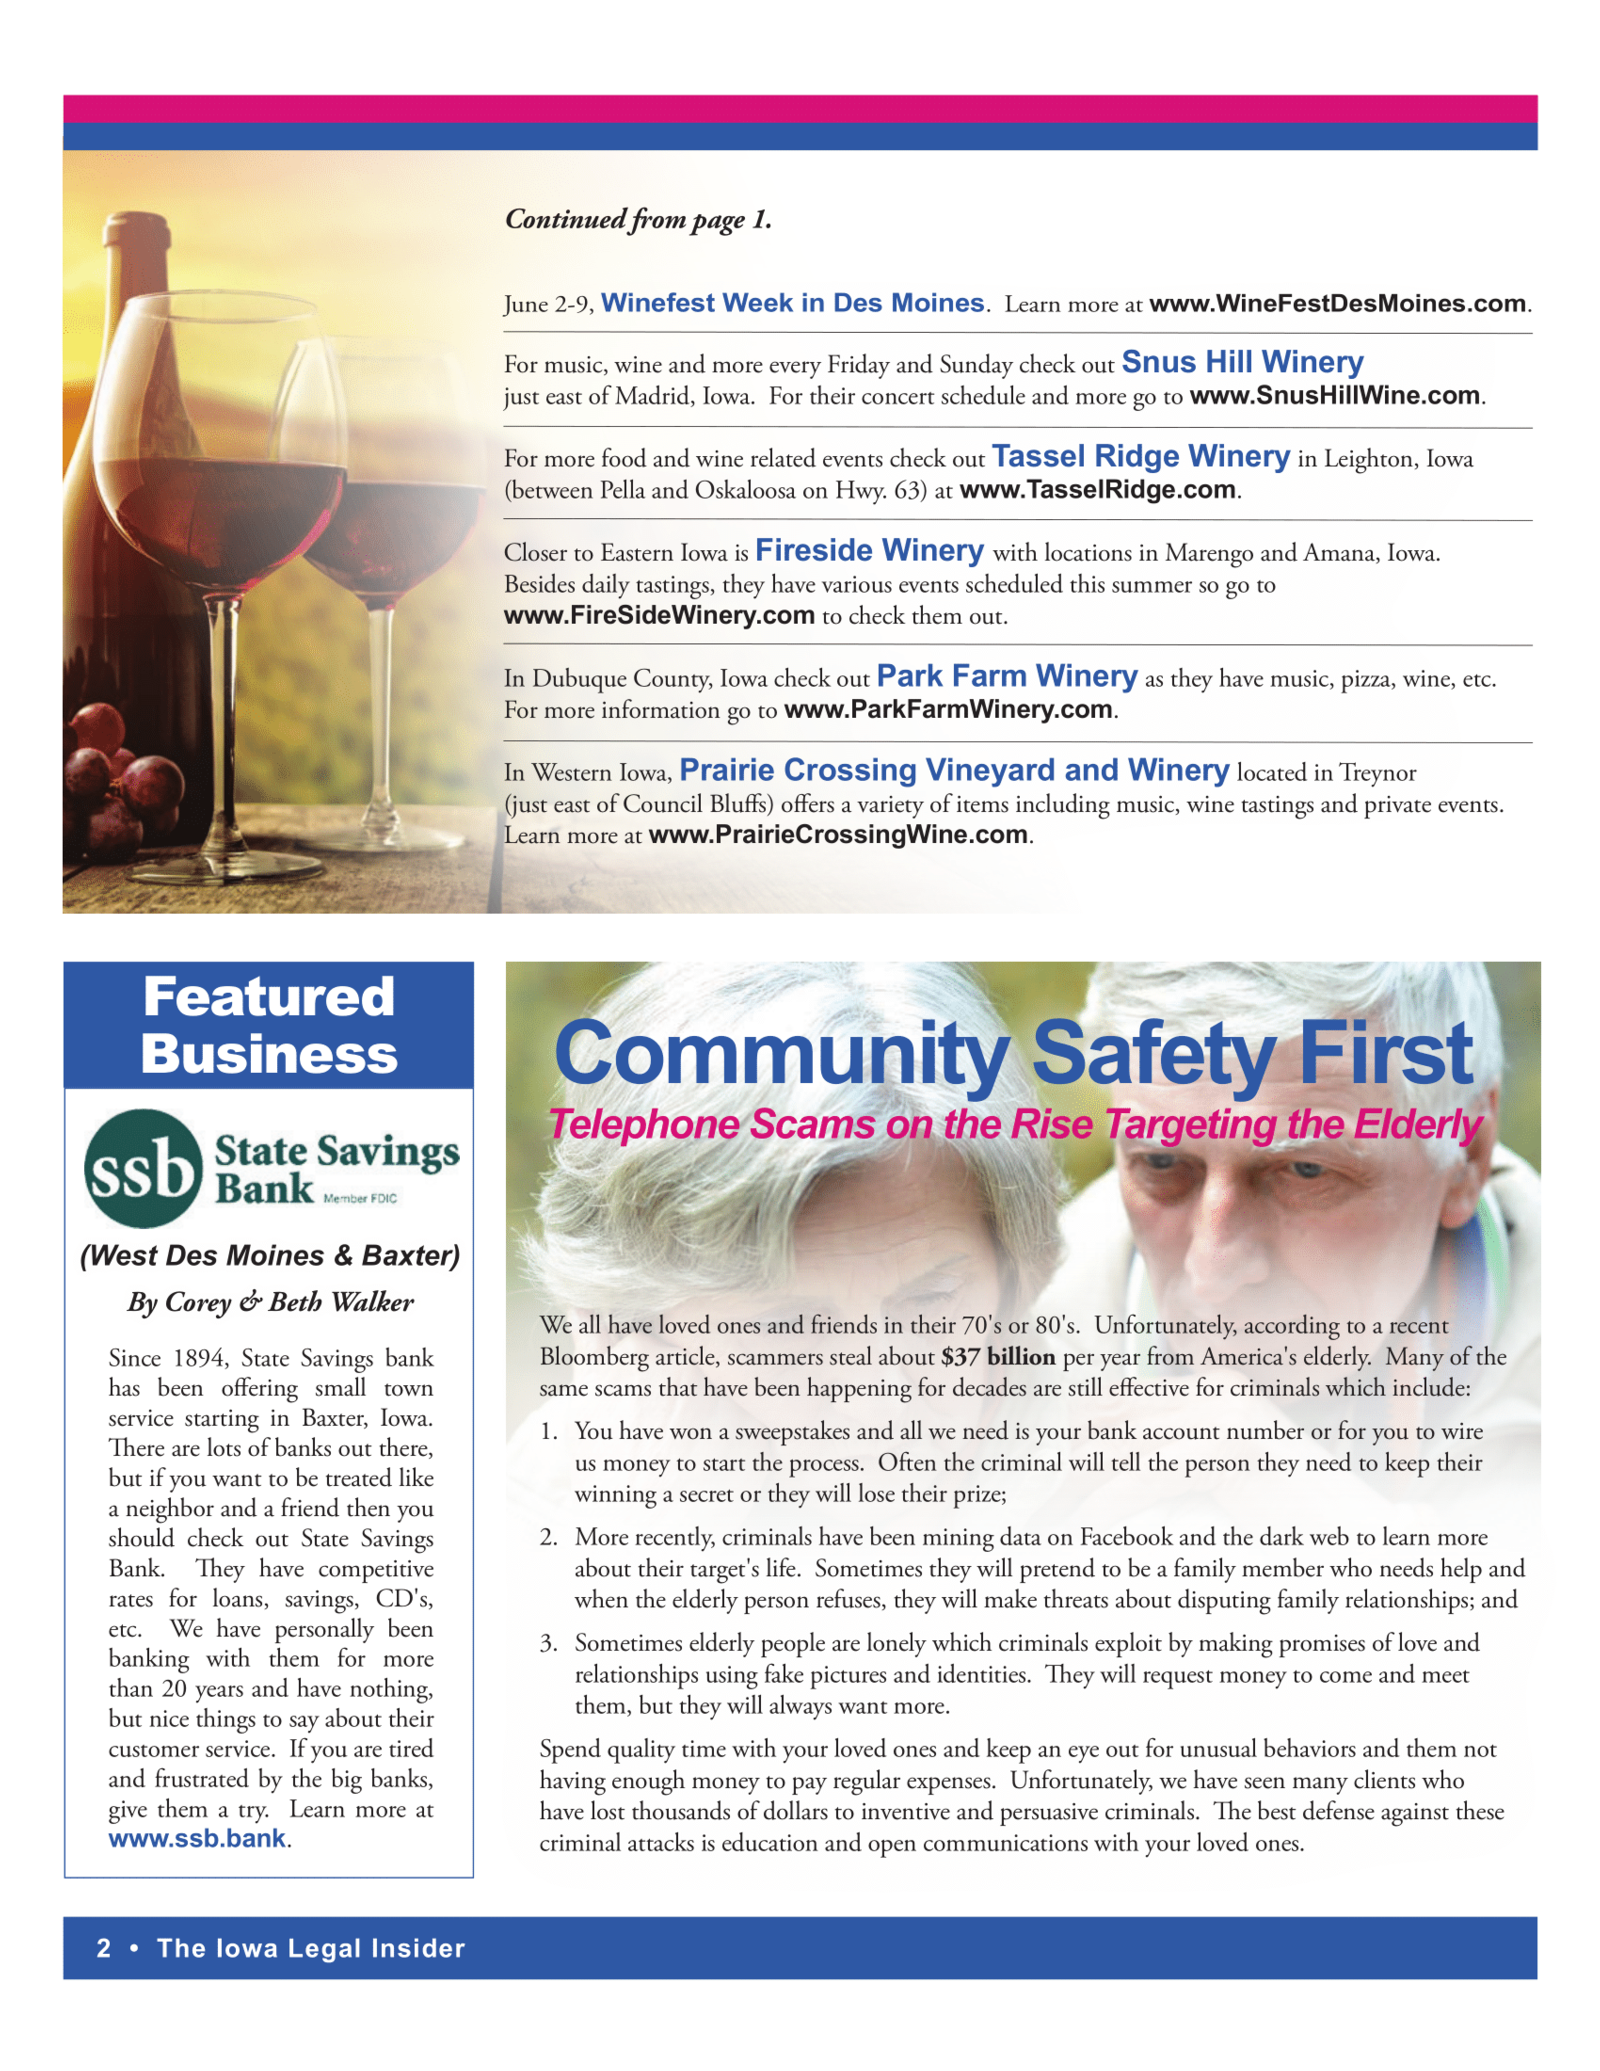 Iowa legal insider newsletter community safety